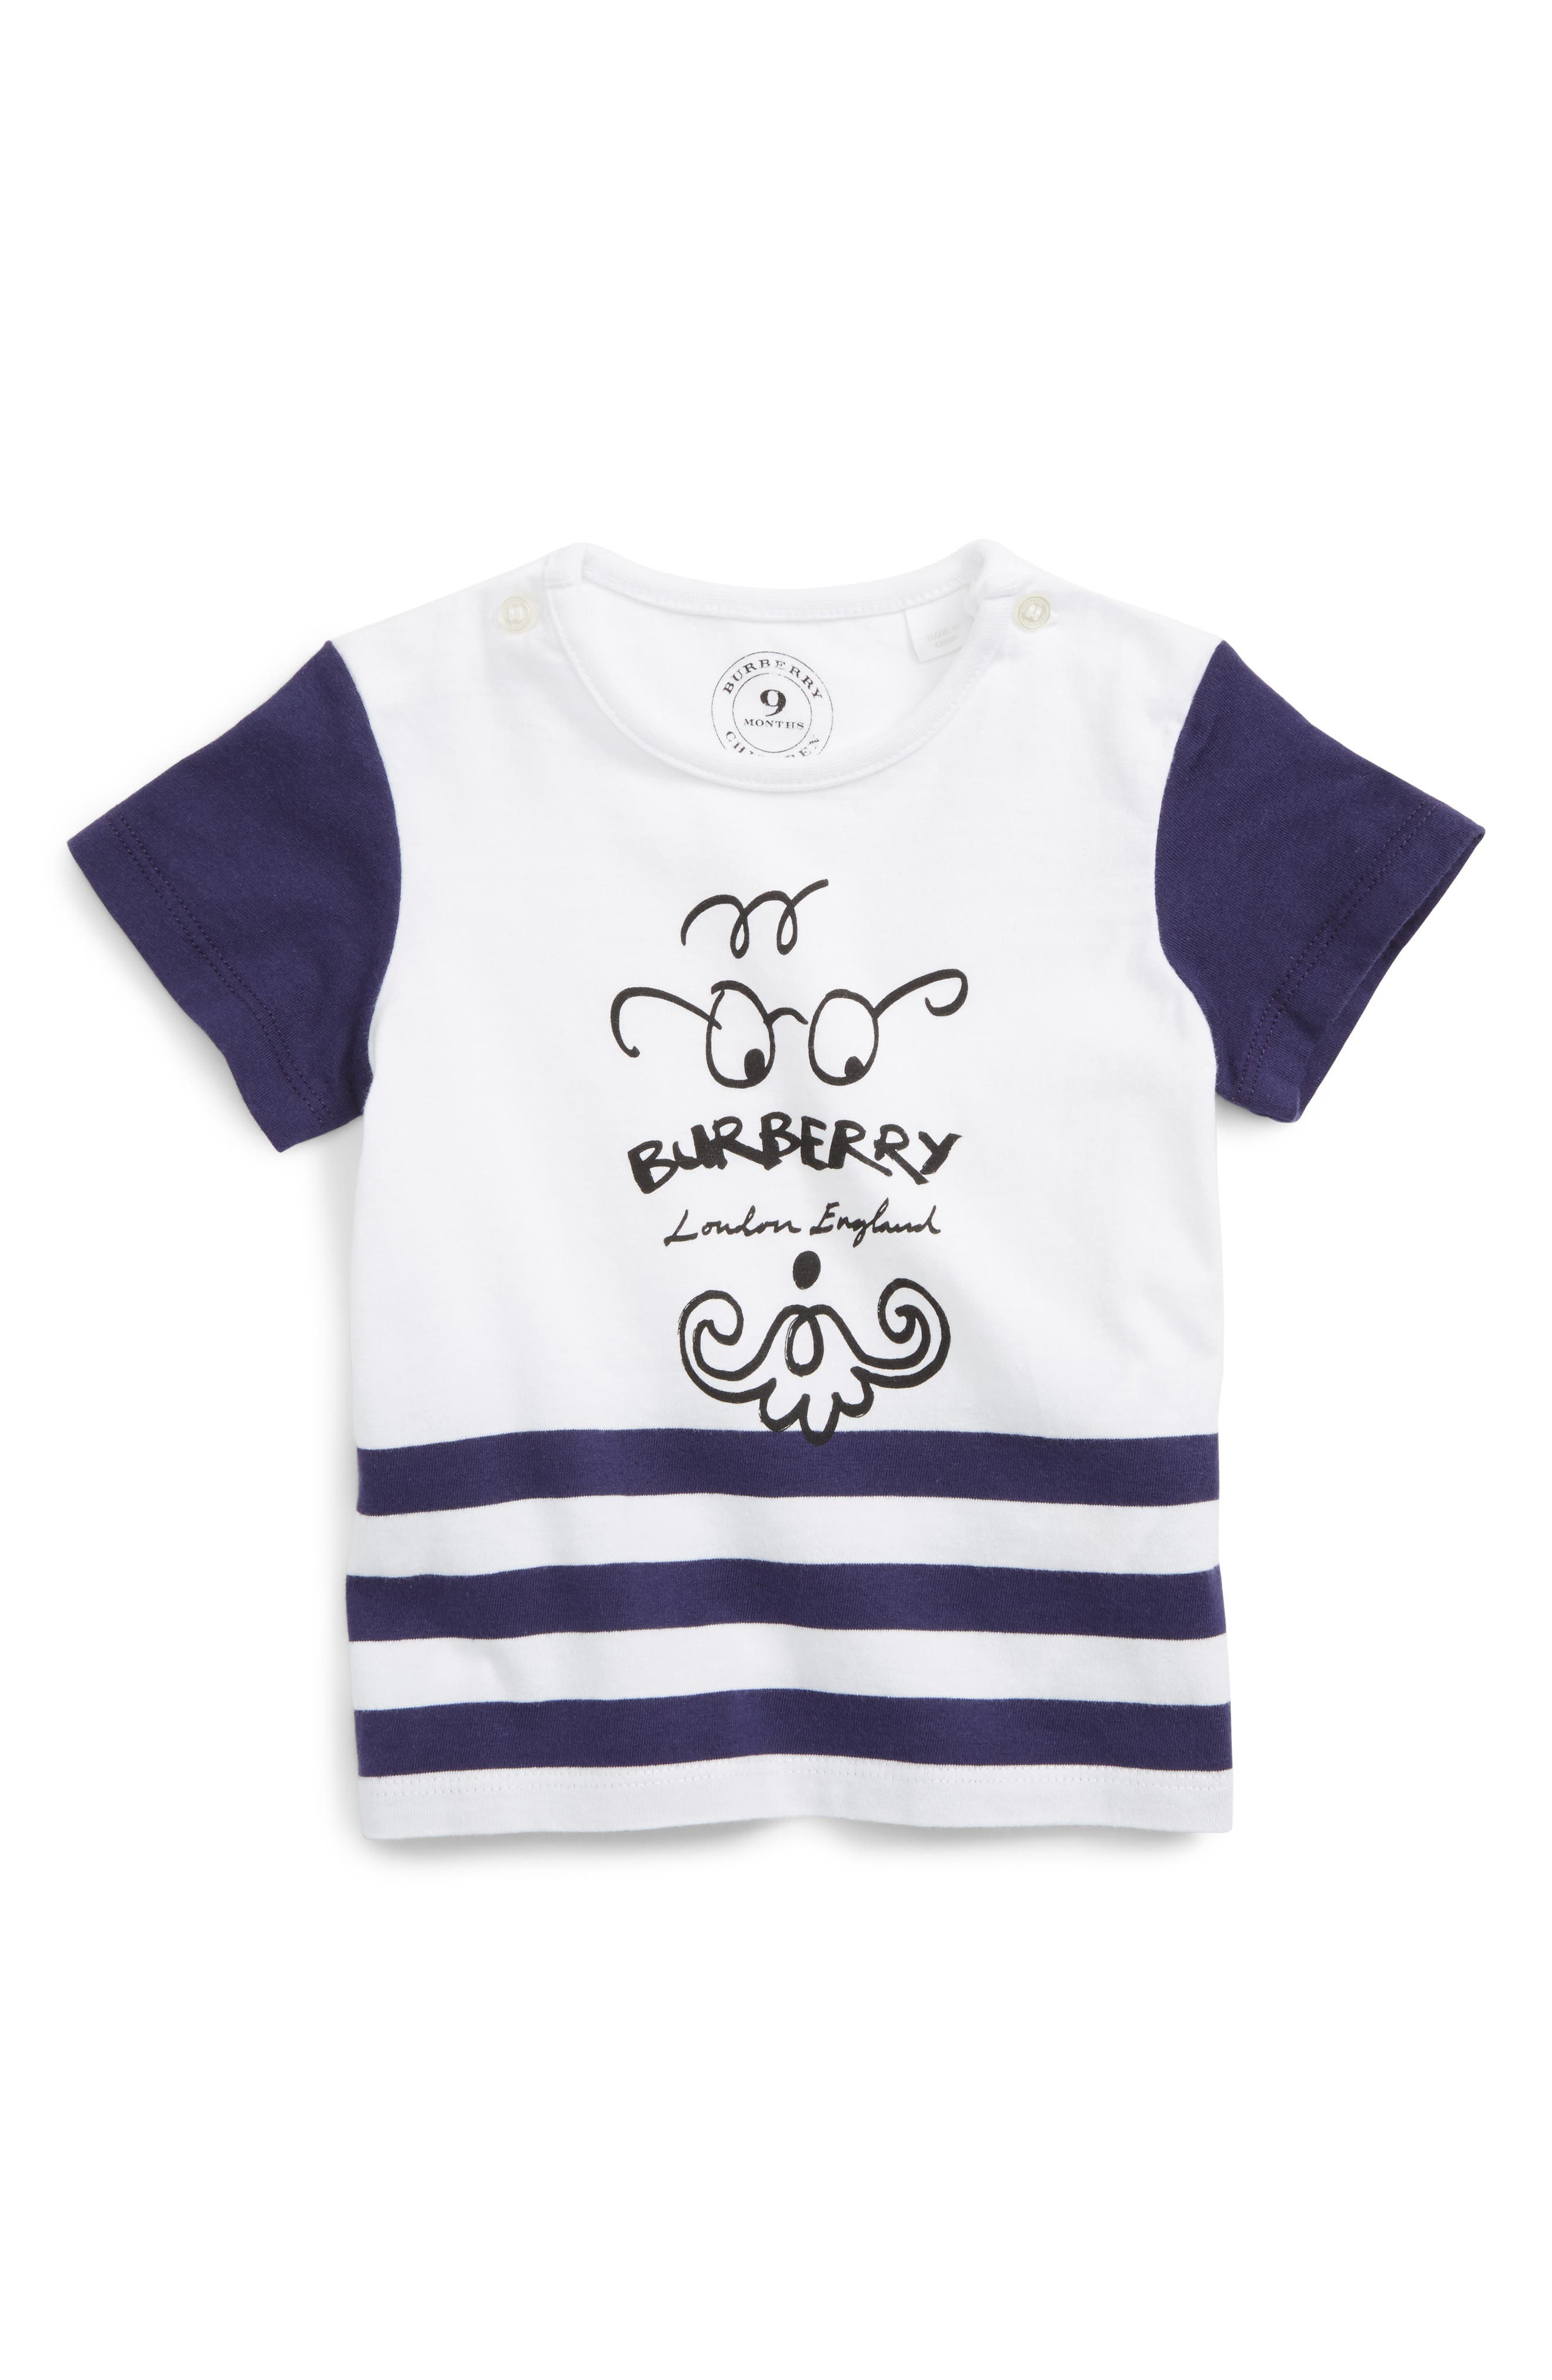 Alternate Image 1 Selected - Burberry Beard Gent Graphic T-Shirt (Baby Boys)